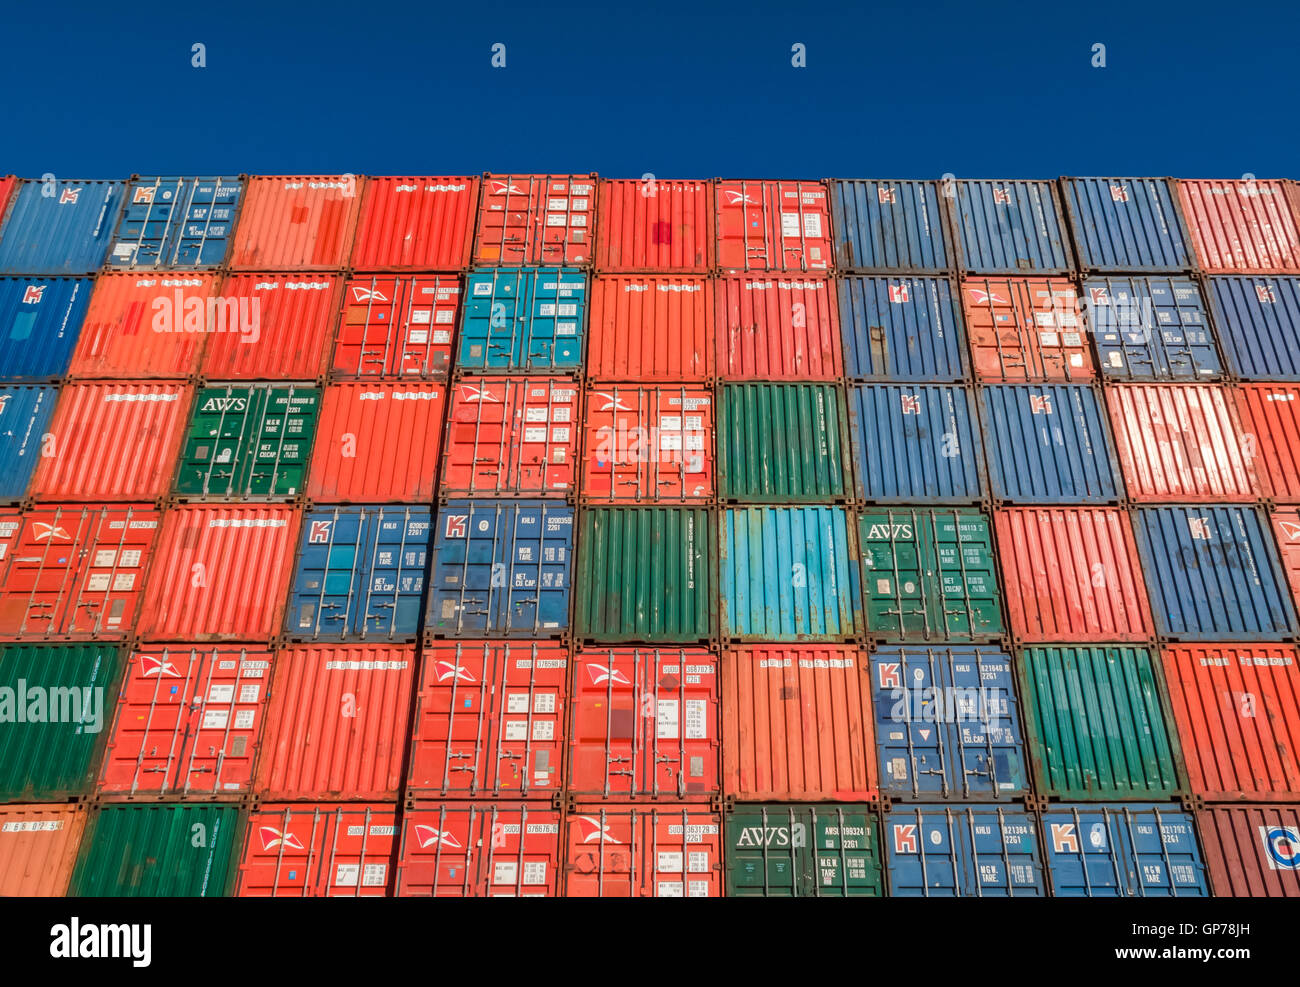 Wall of shipping containers stacked high - Stock Image